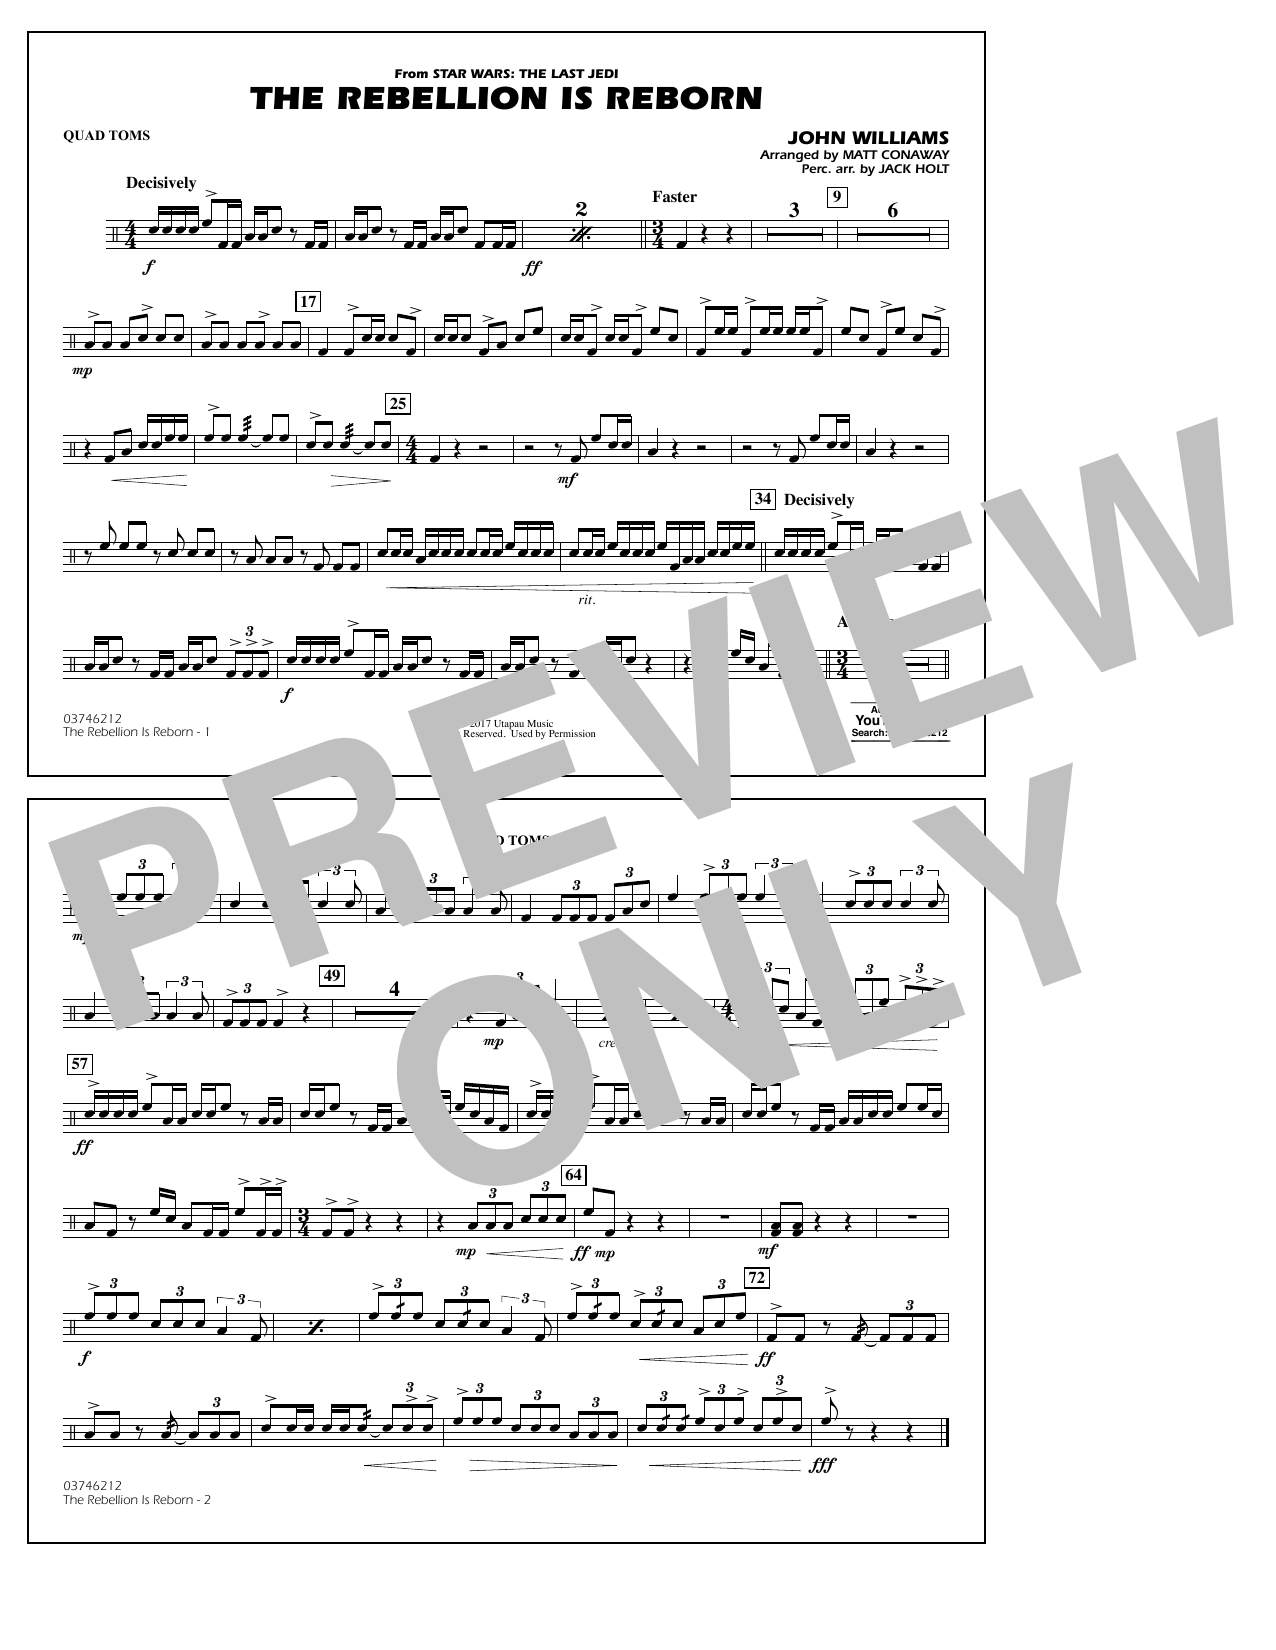 Matt Conaway The Rebellion Is Reborn - Quad Toms sheet music notes and chords